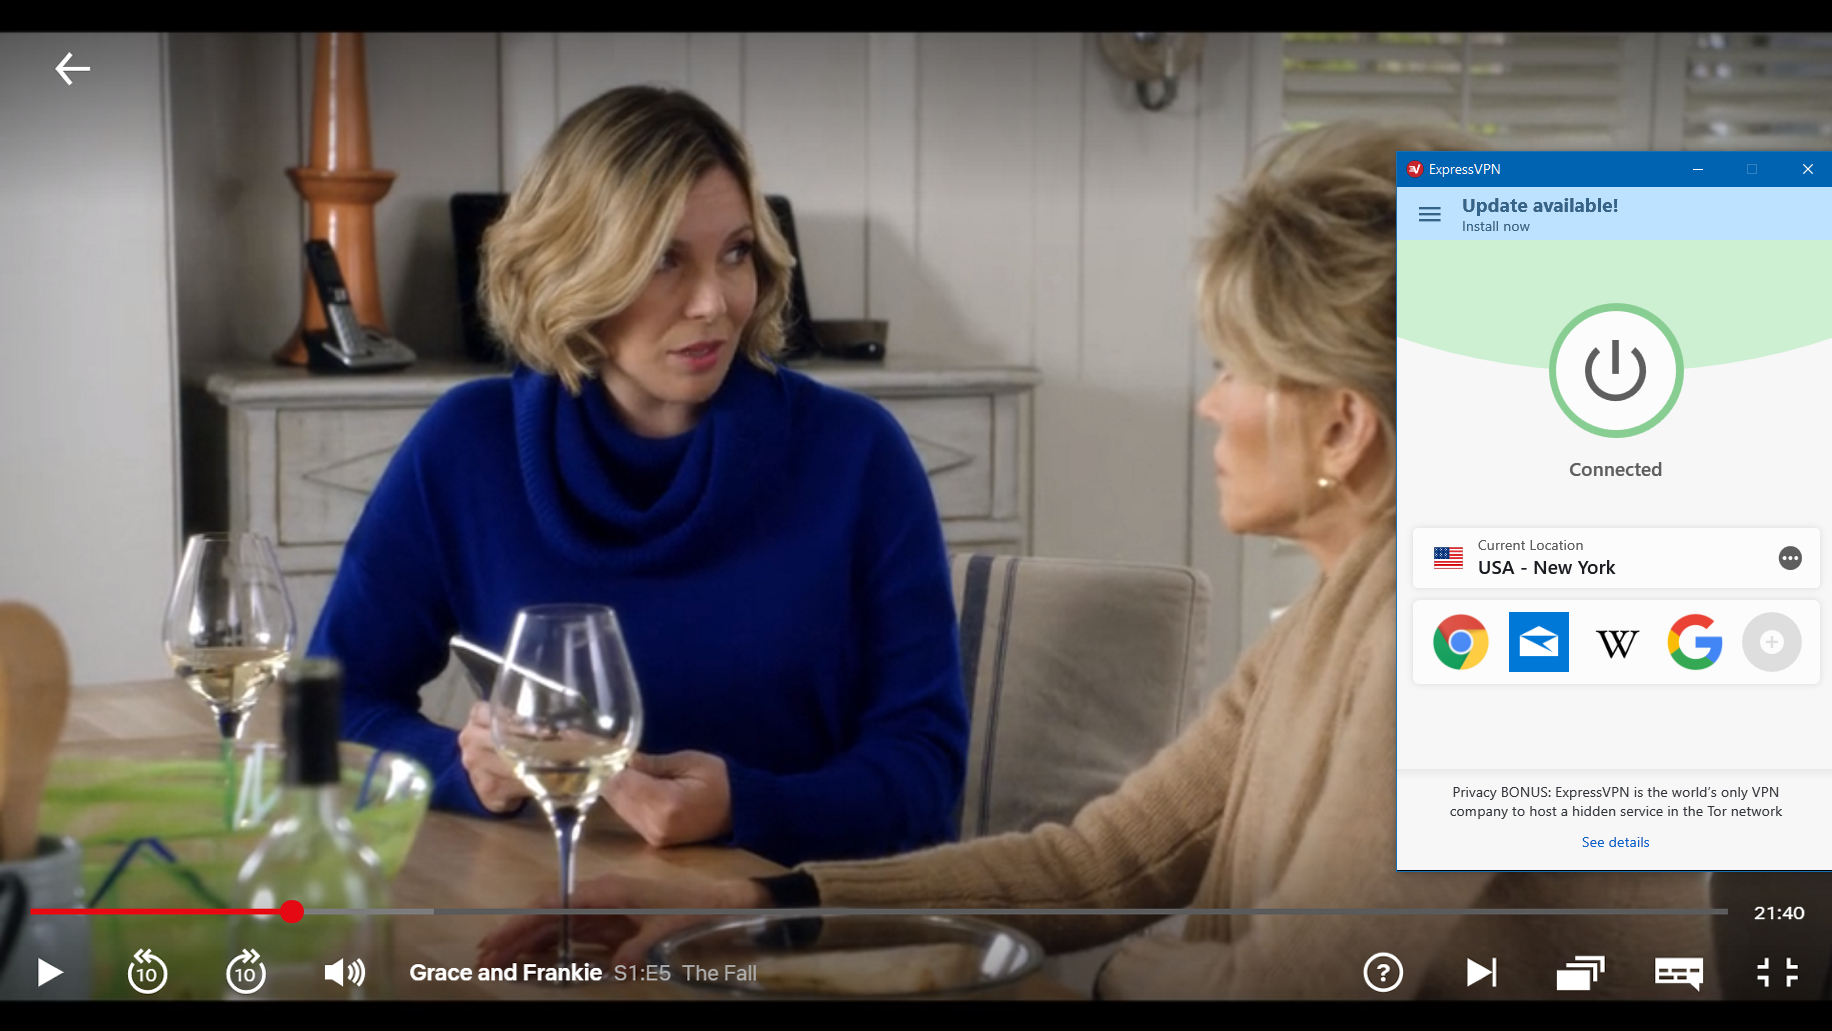 screenshot of Grace and Frankie playing on netflix with expressvpn